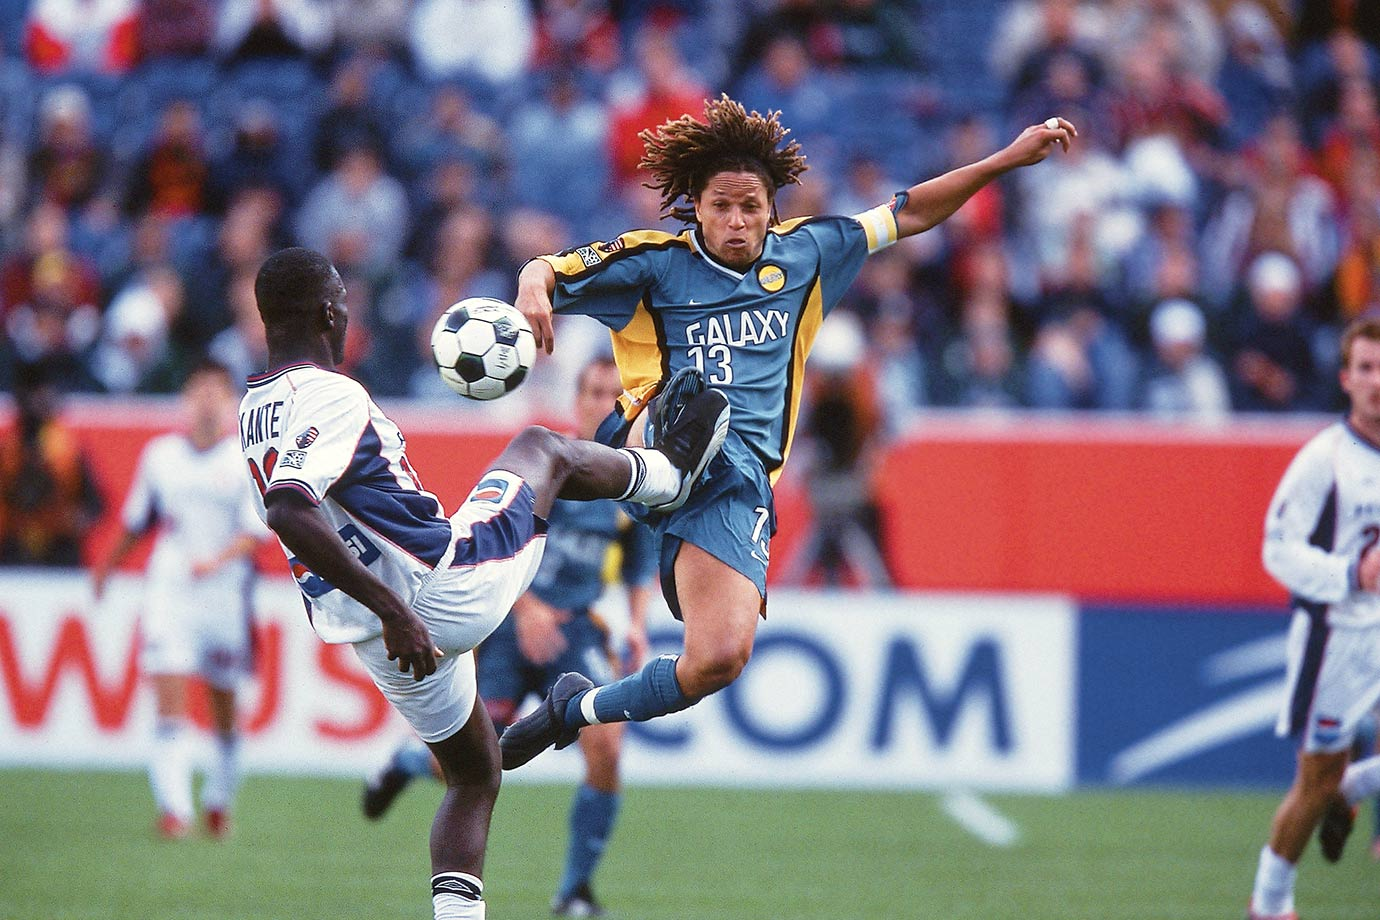 <p>2002 — LA Galaxy (beat New England Revolution 1-0 in extra time)</p>